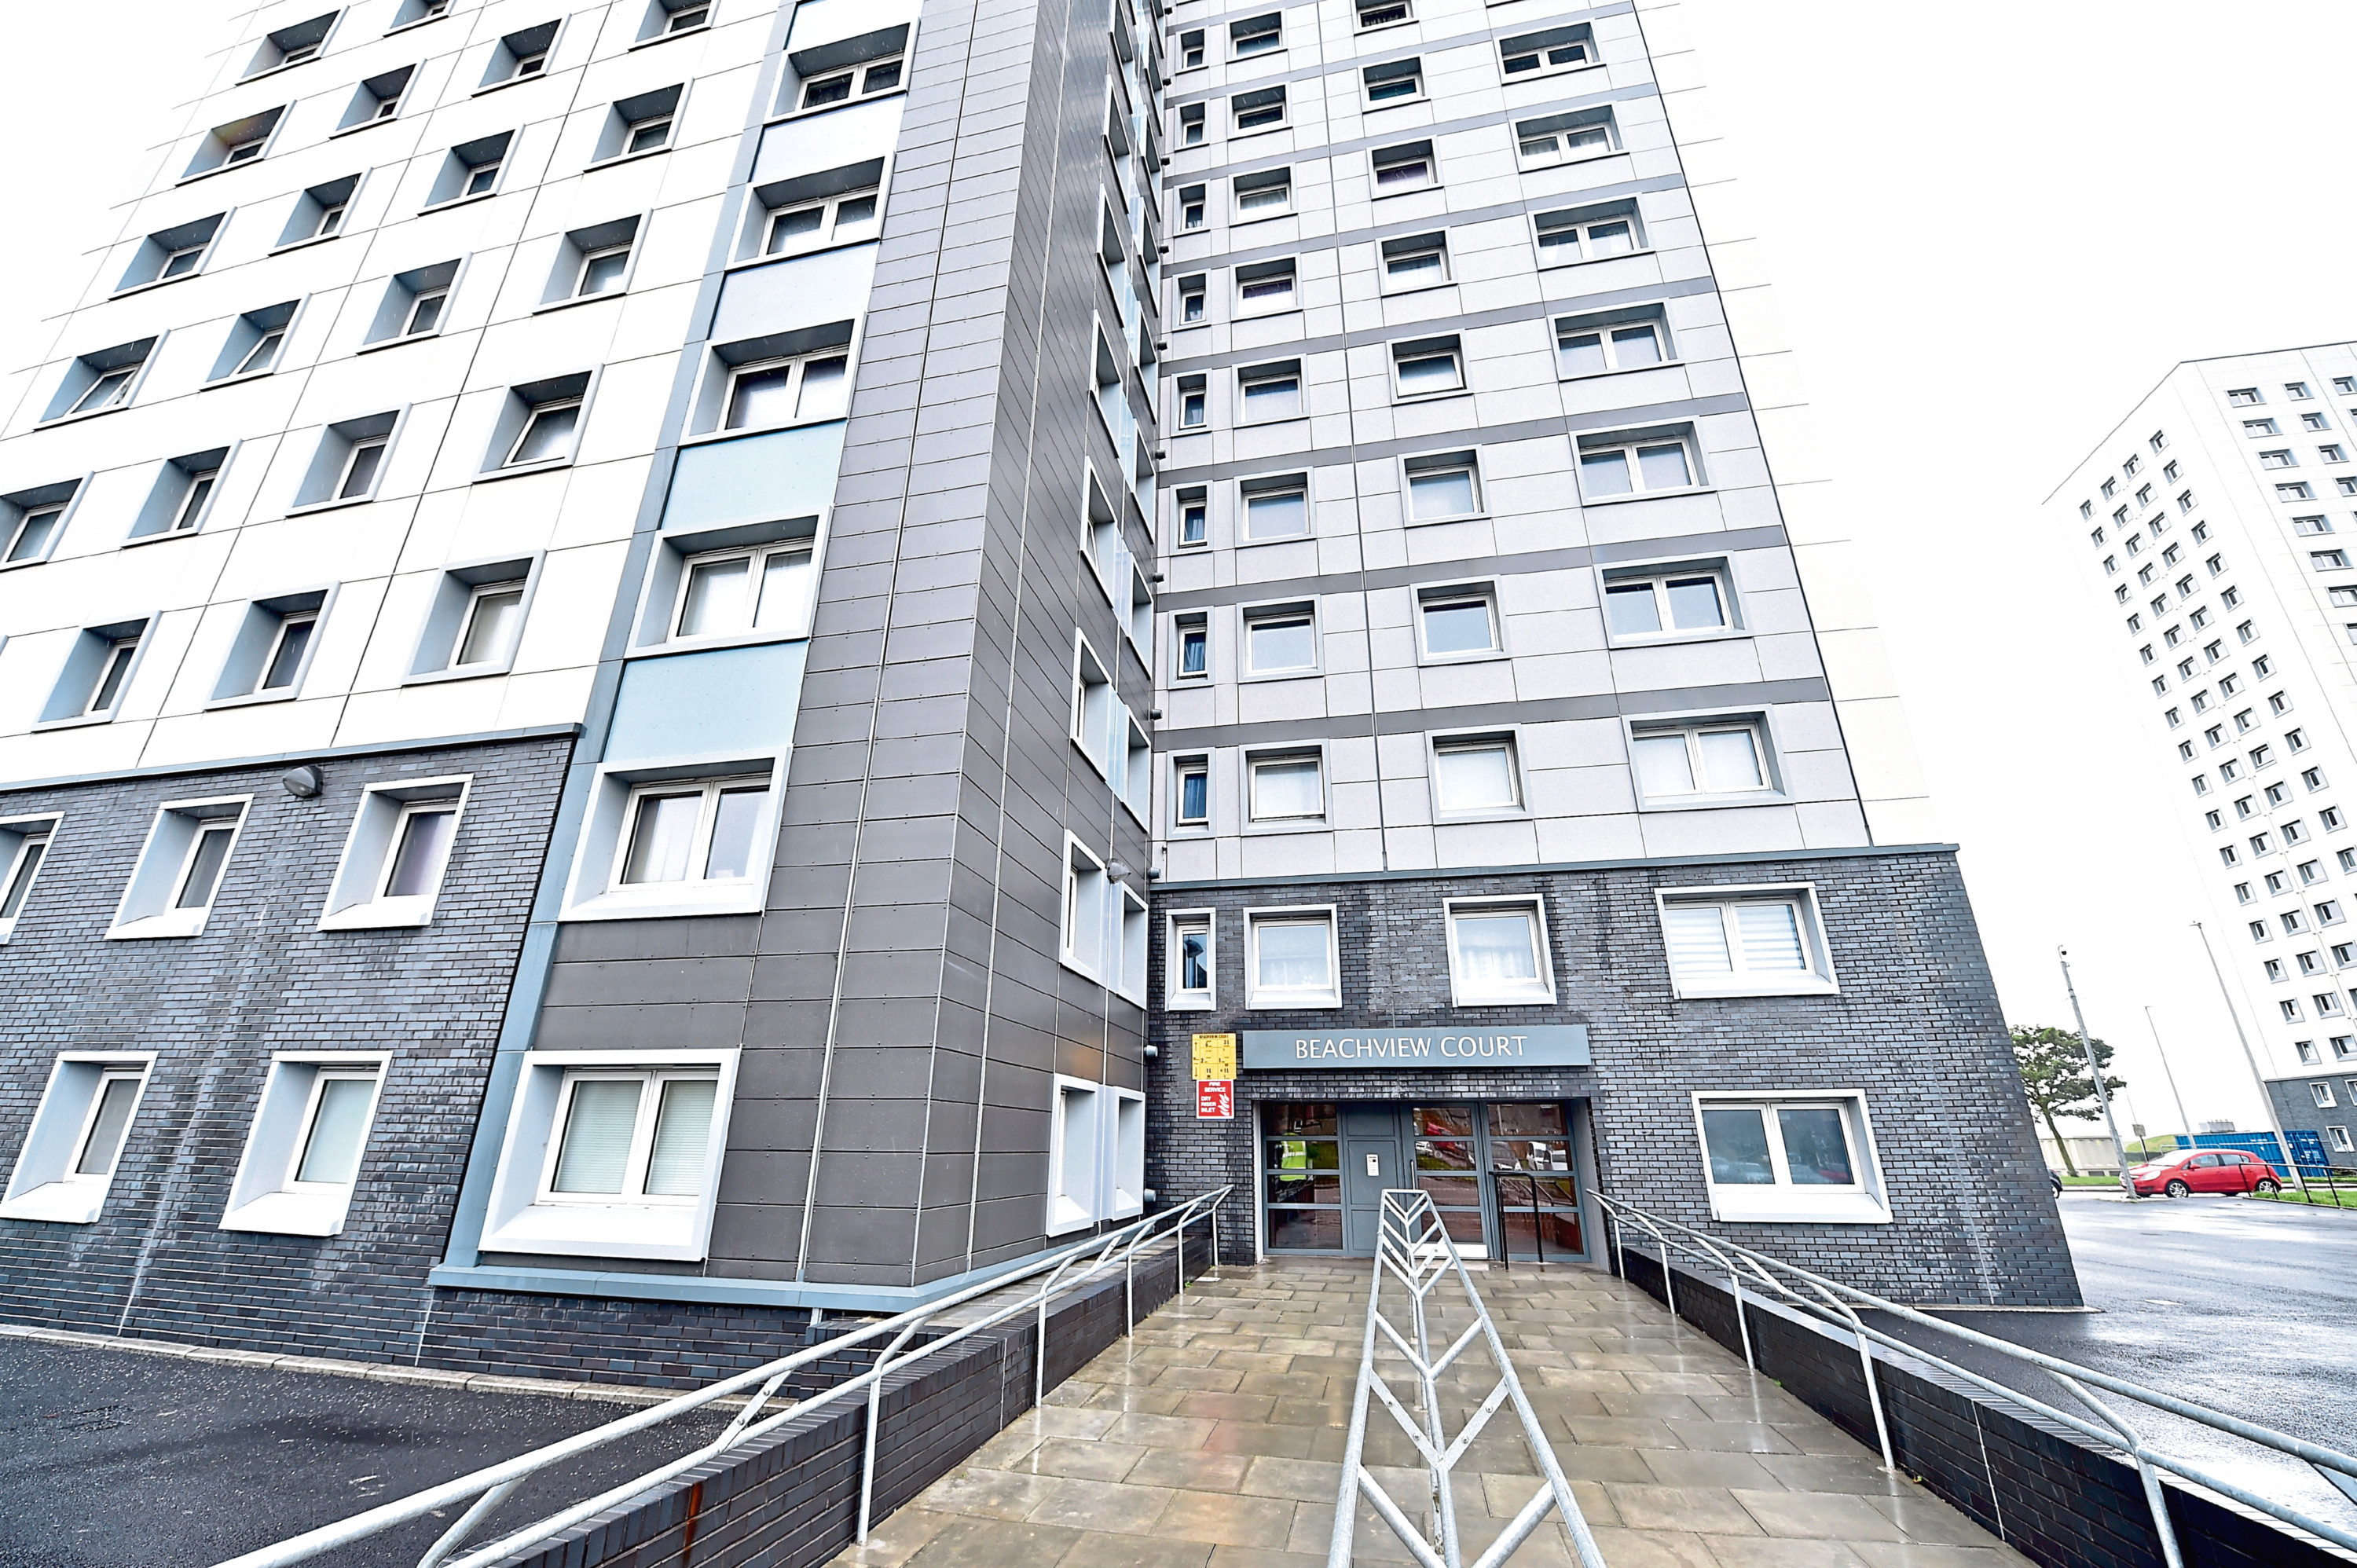 Workers were potentially exposed to asbestos during work at Beachview Court